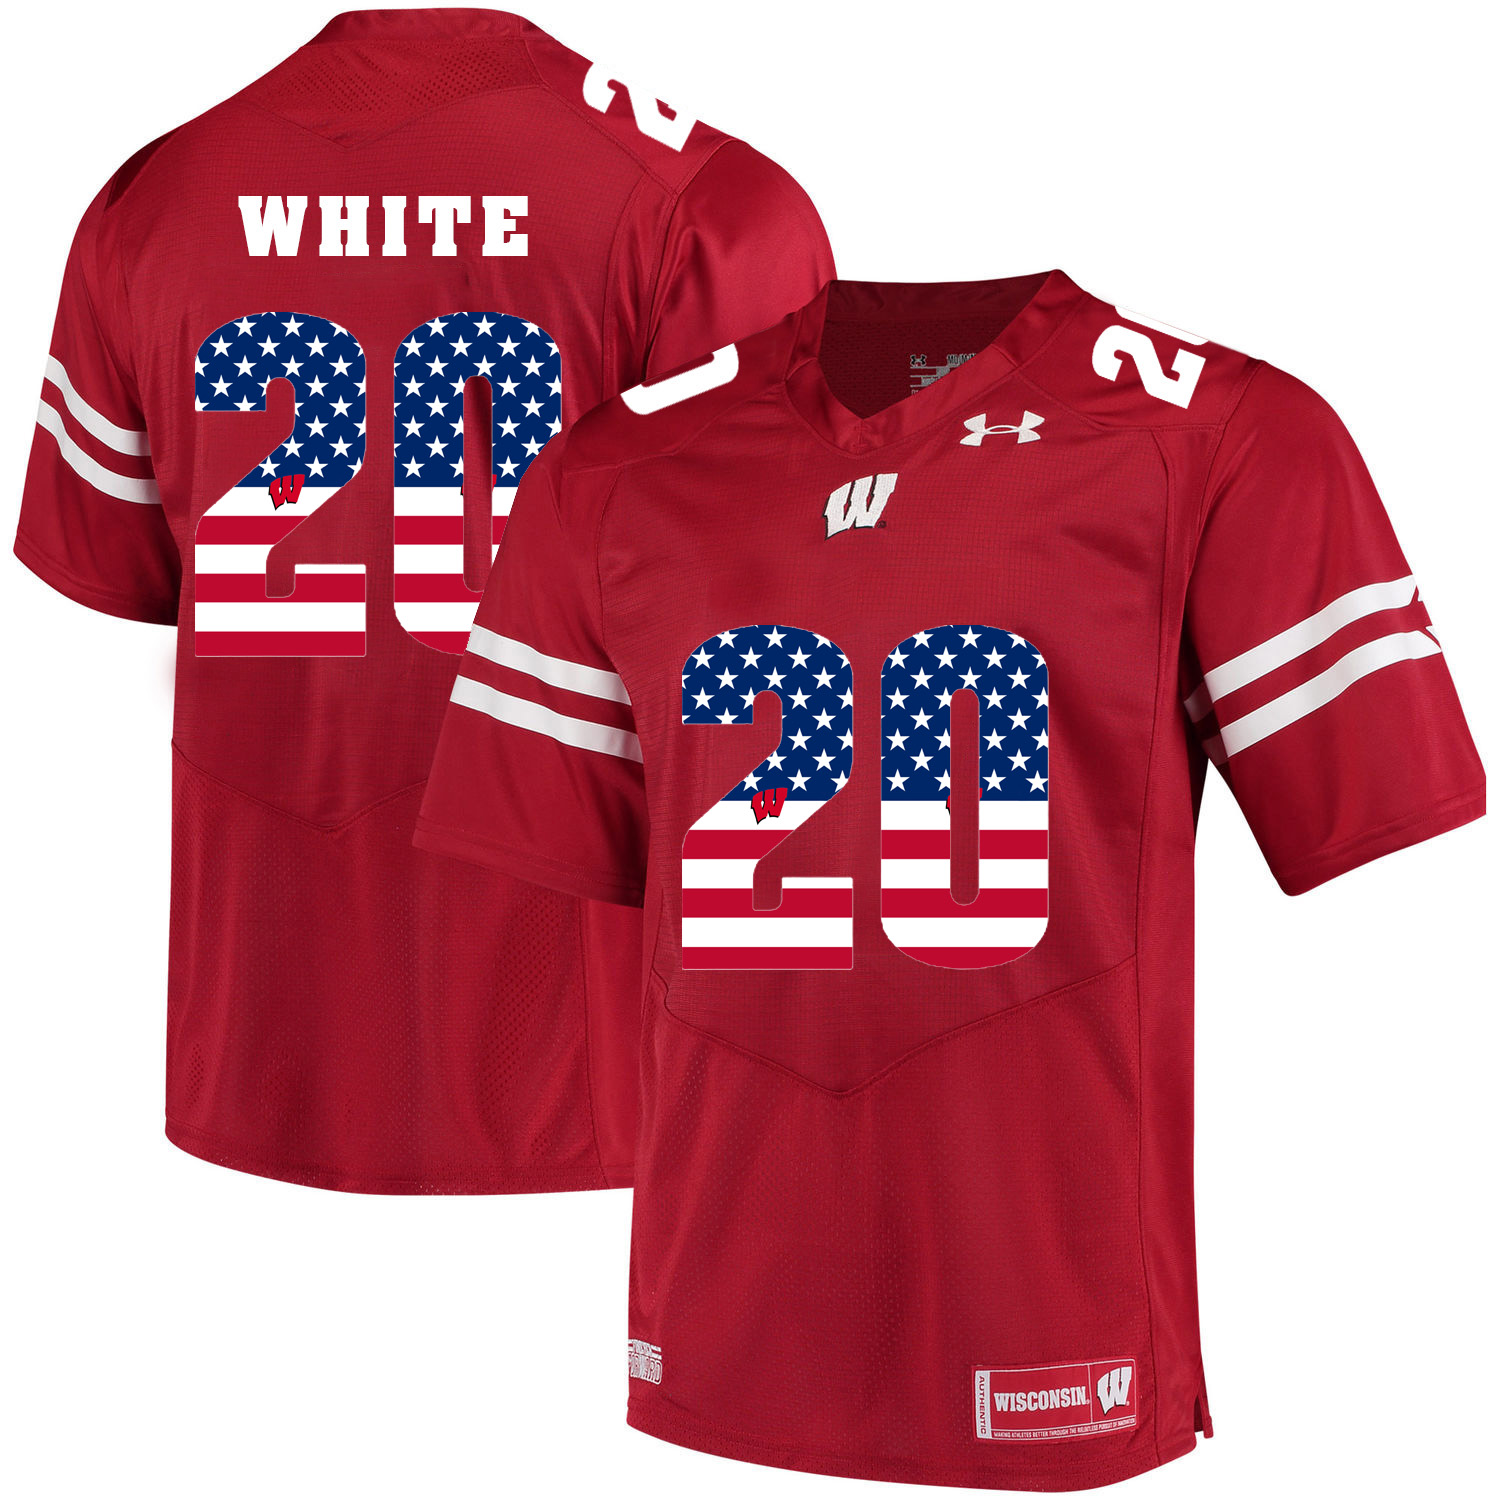 Wisconsin Badgers 20 James Red White USA Flag College Football Jersey